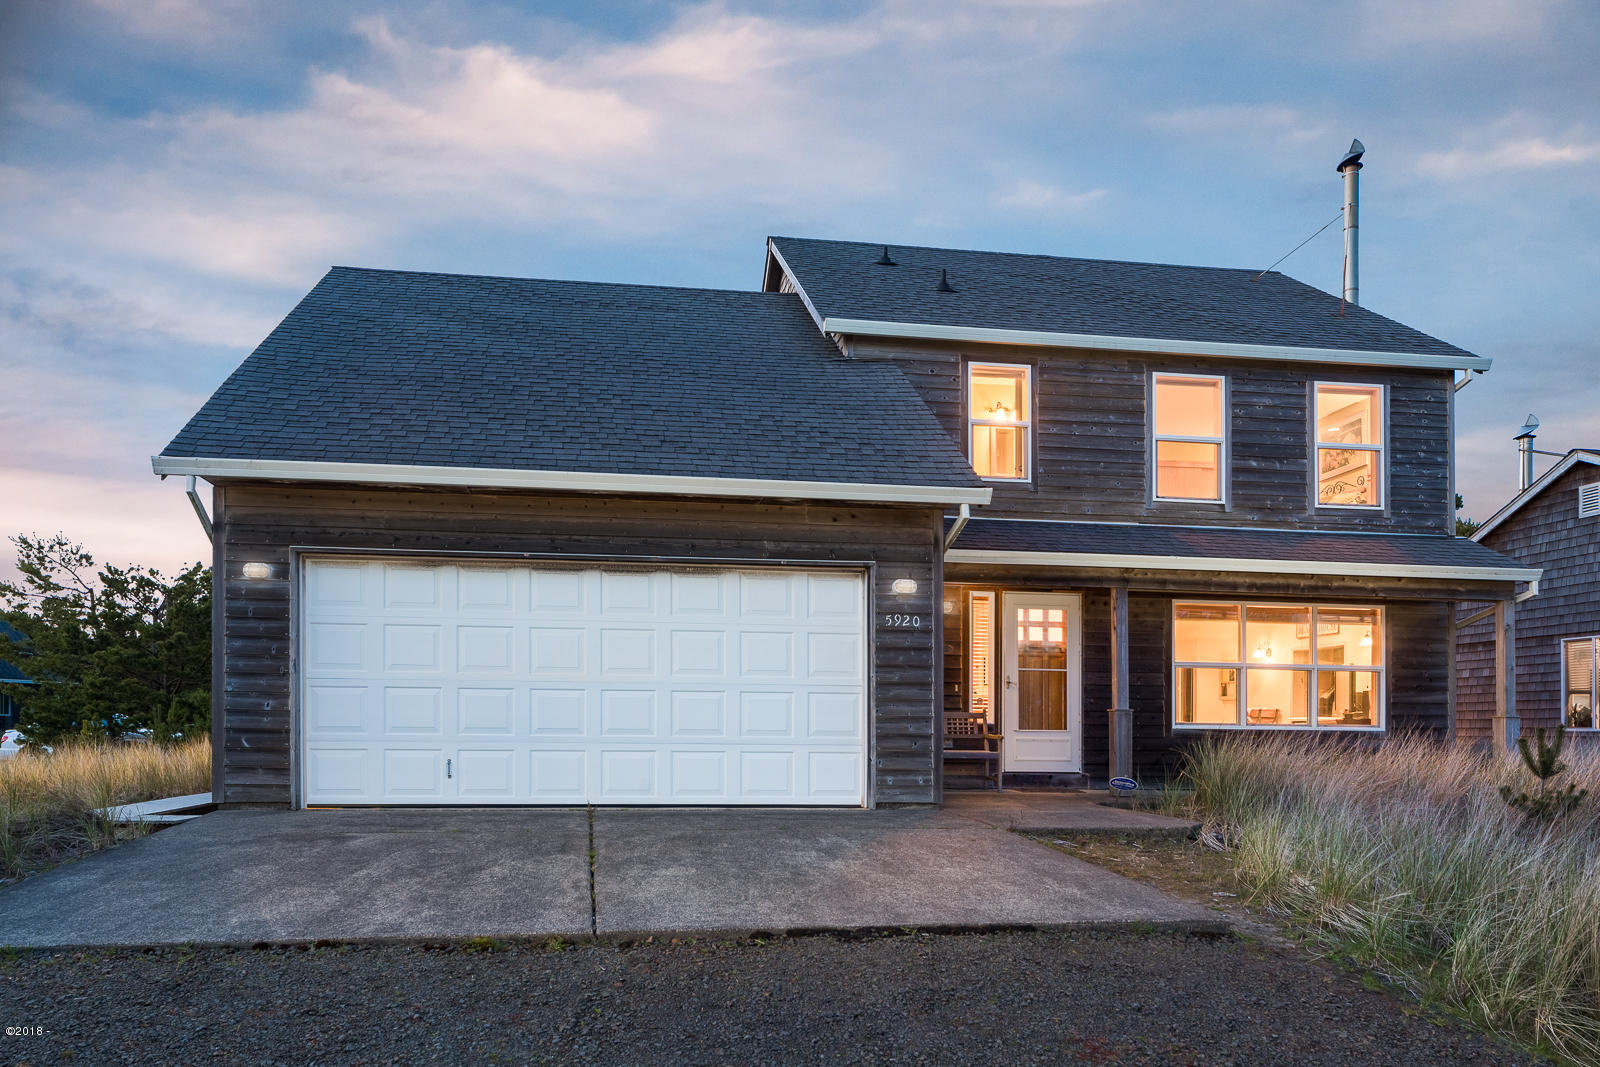 5920 Neptune Dr, Pacific City, OR 97135 - Exterior